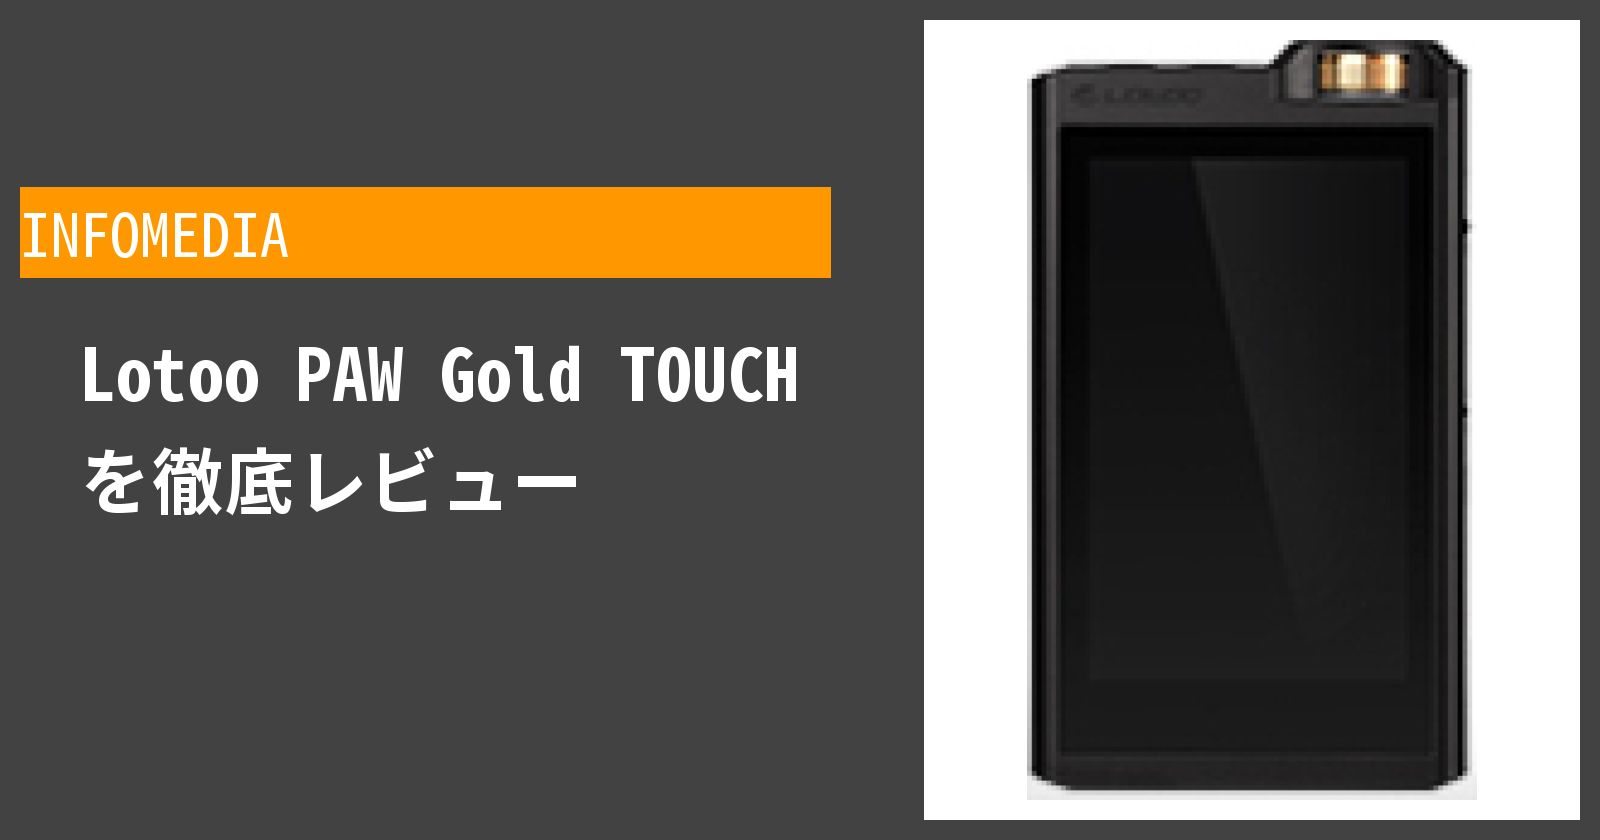 Lotoo PAW Gold TOUCHを徹底評価